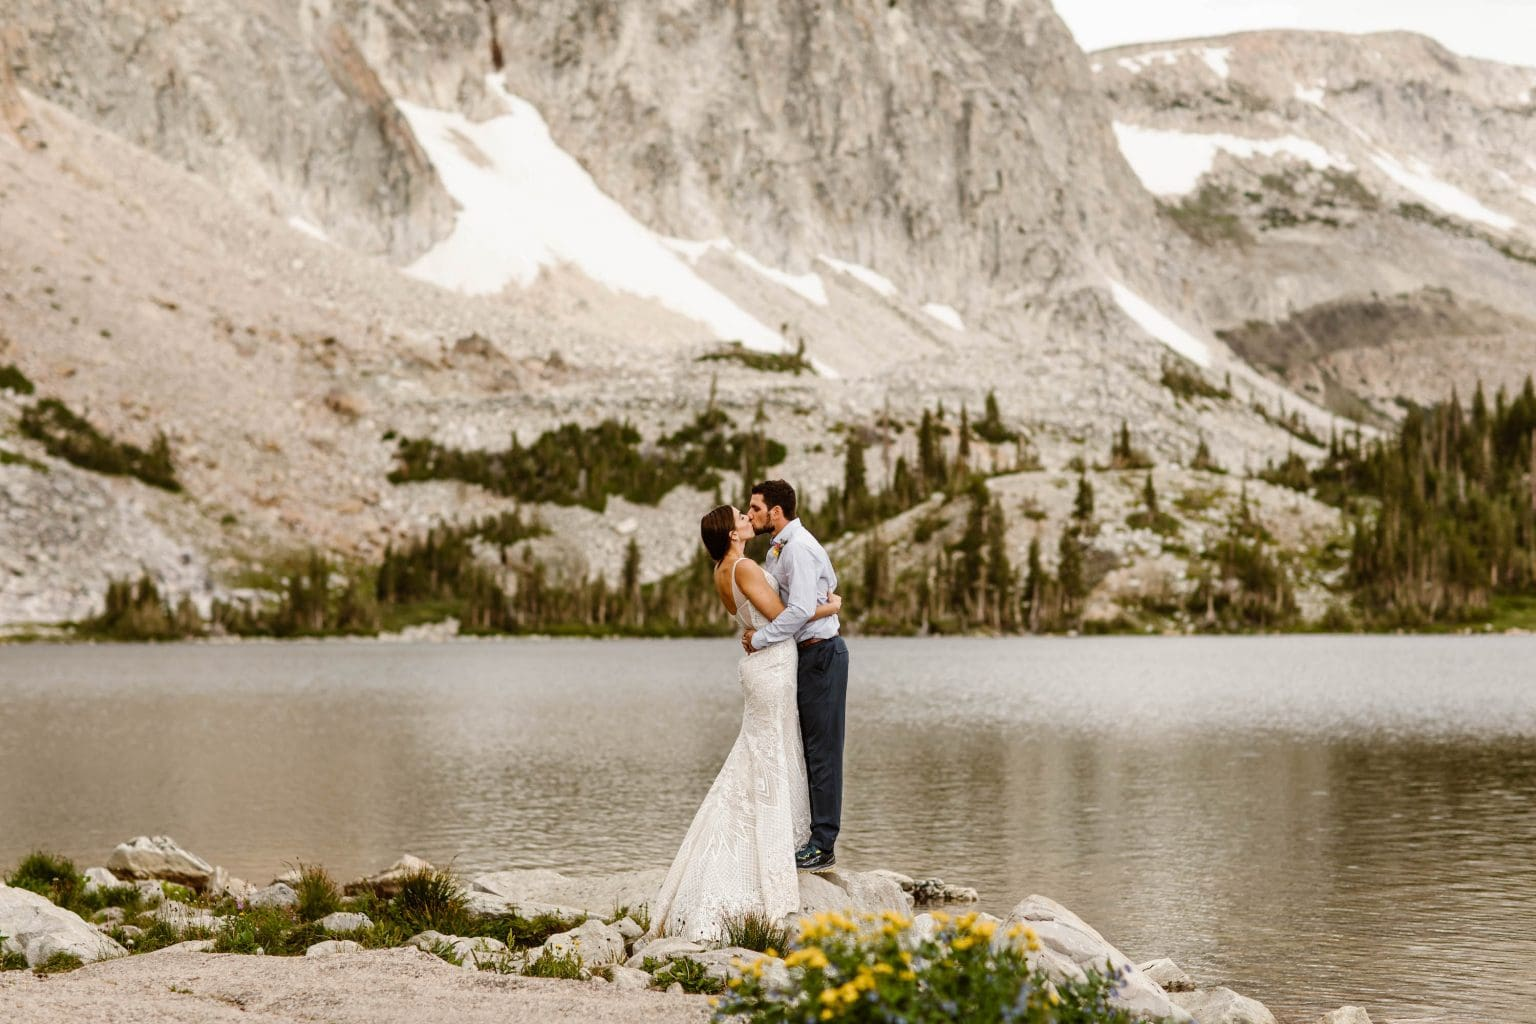 how much does it cost to elope | couple eloping in the mountains by an alpine lake